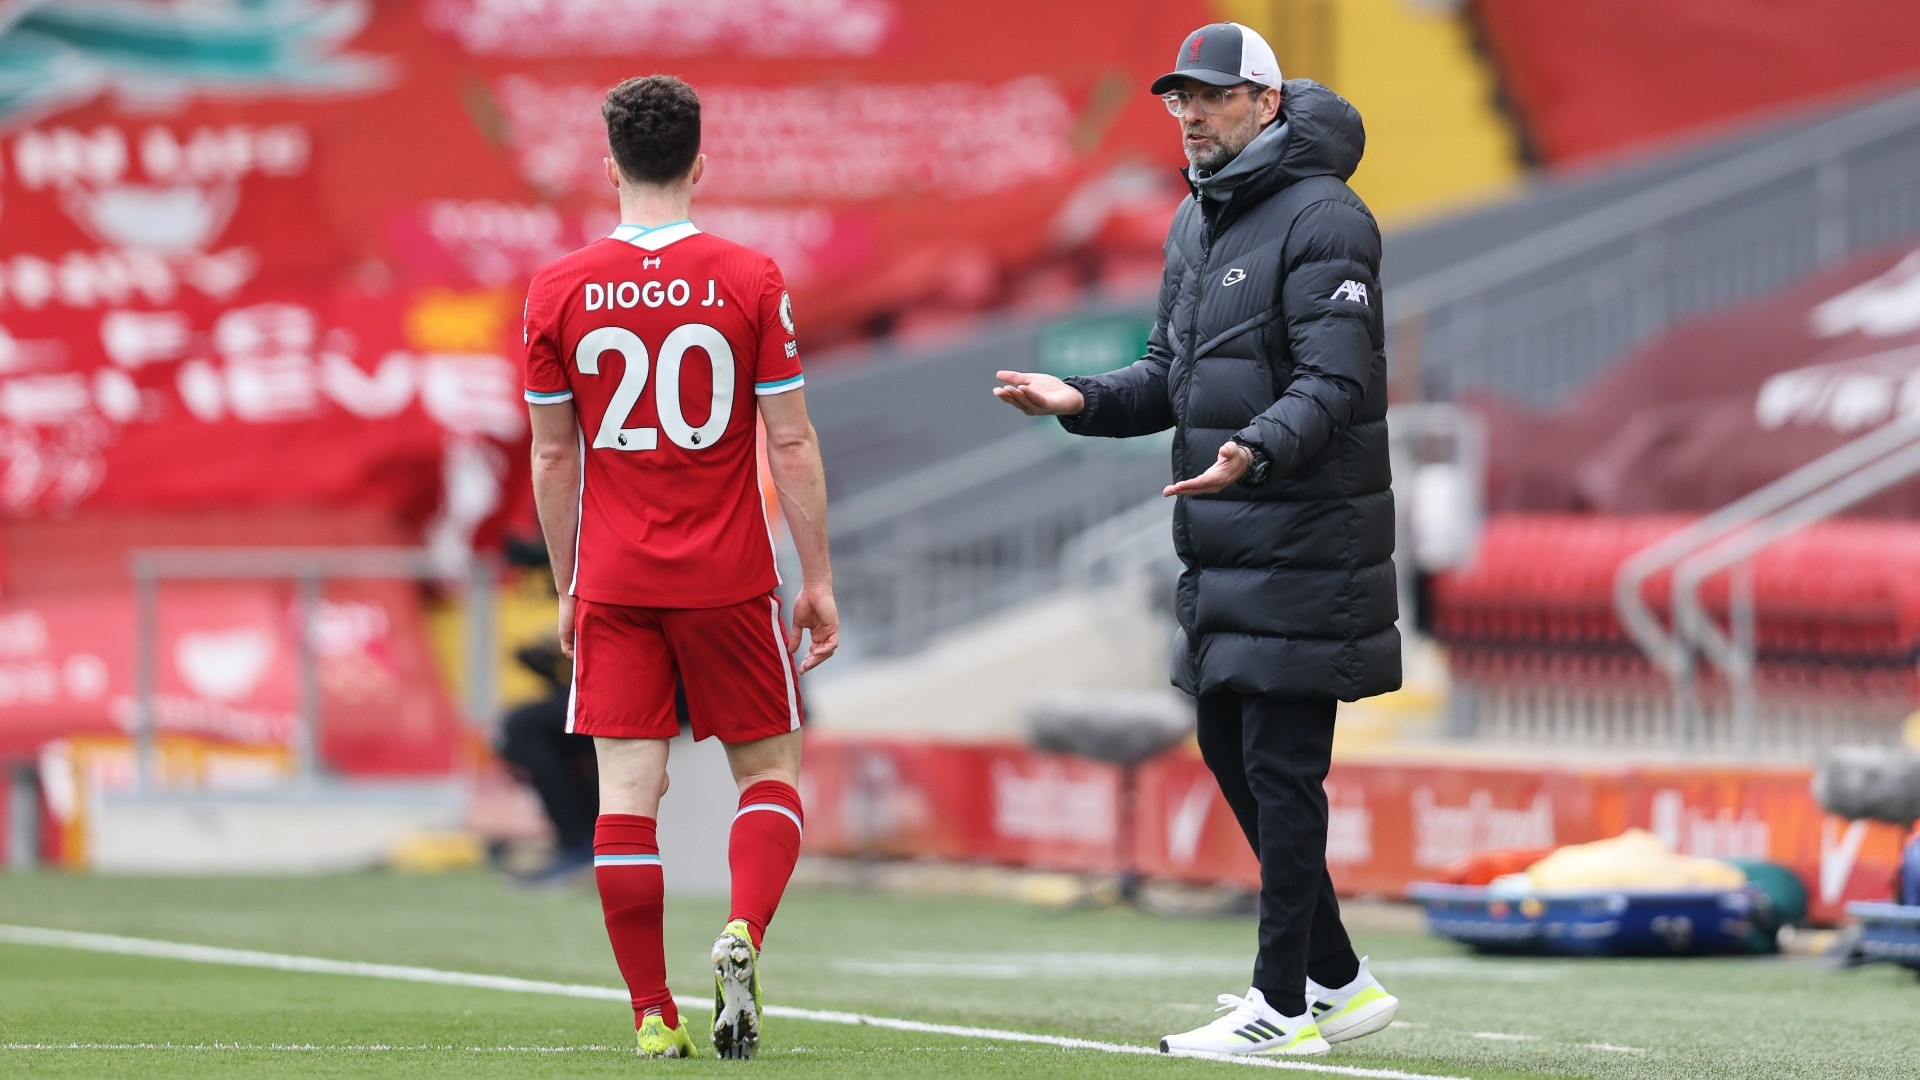 'Cristiano was my idol' - Ronaldo sets the standard for Liverpool and Portugal star Jota